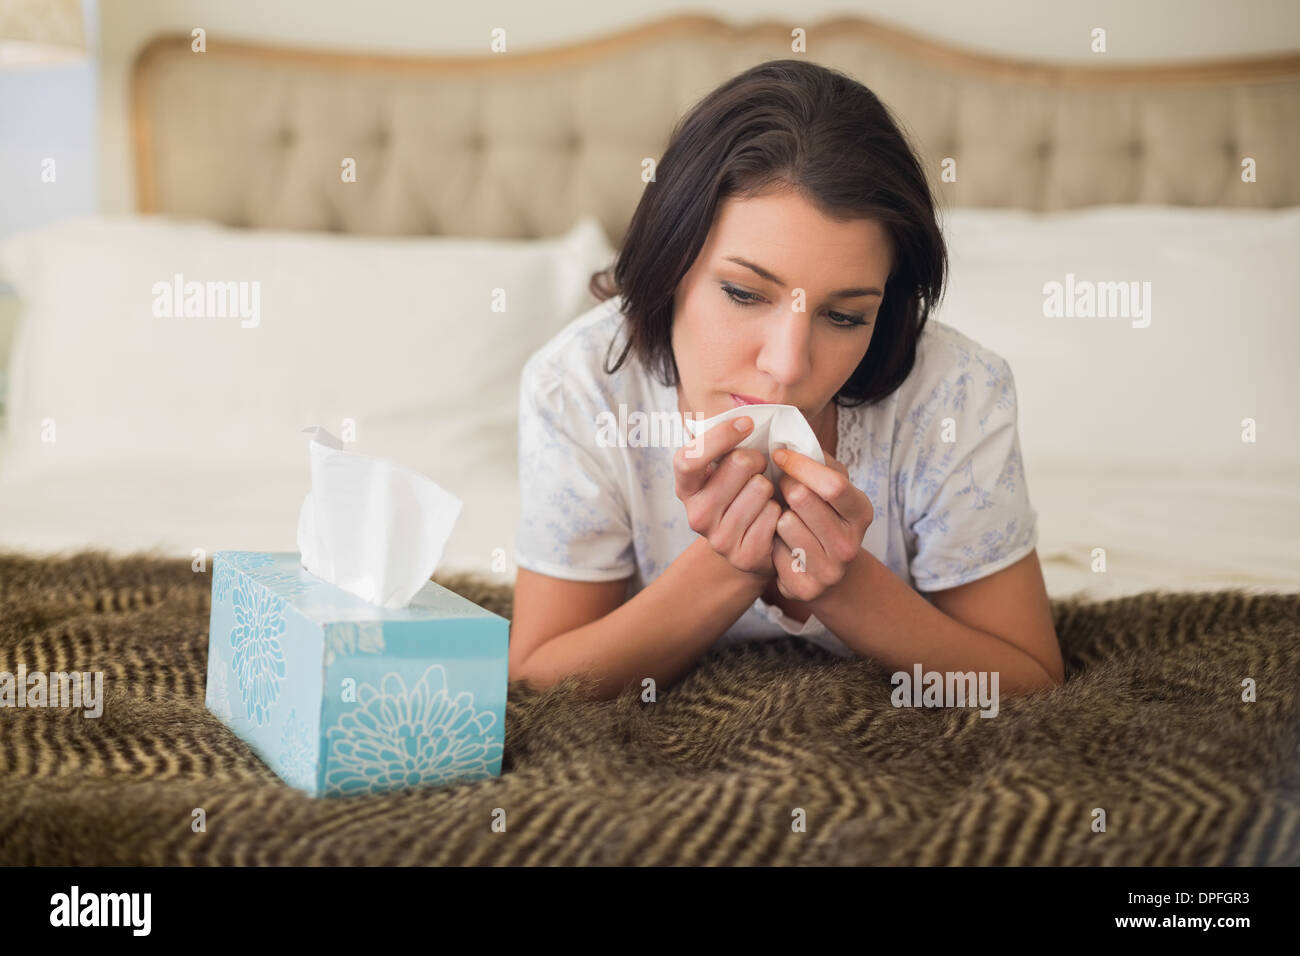 Troubled pretty brown haired woman crying on her bed - Stock Image